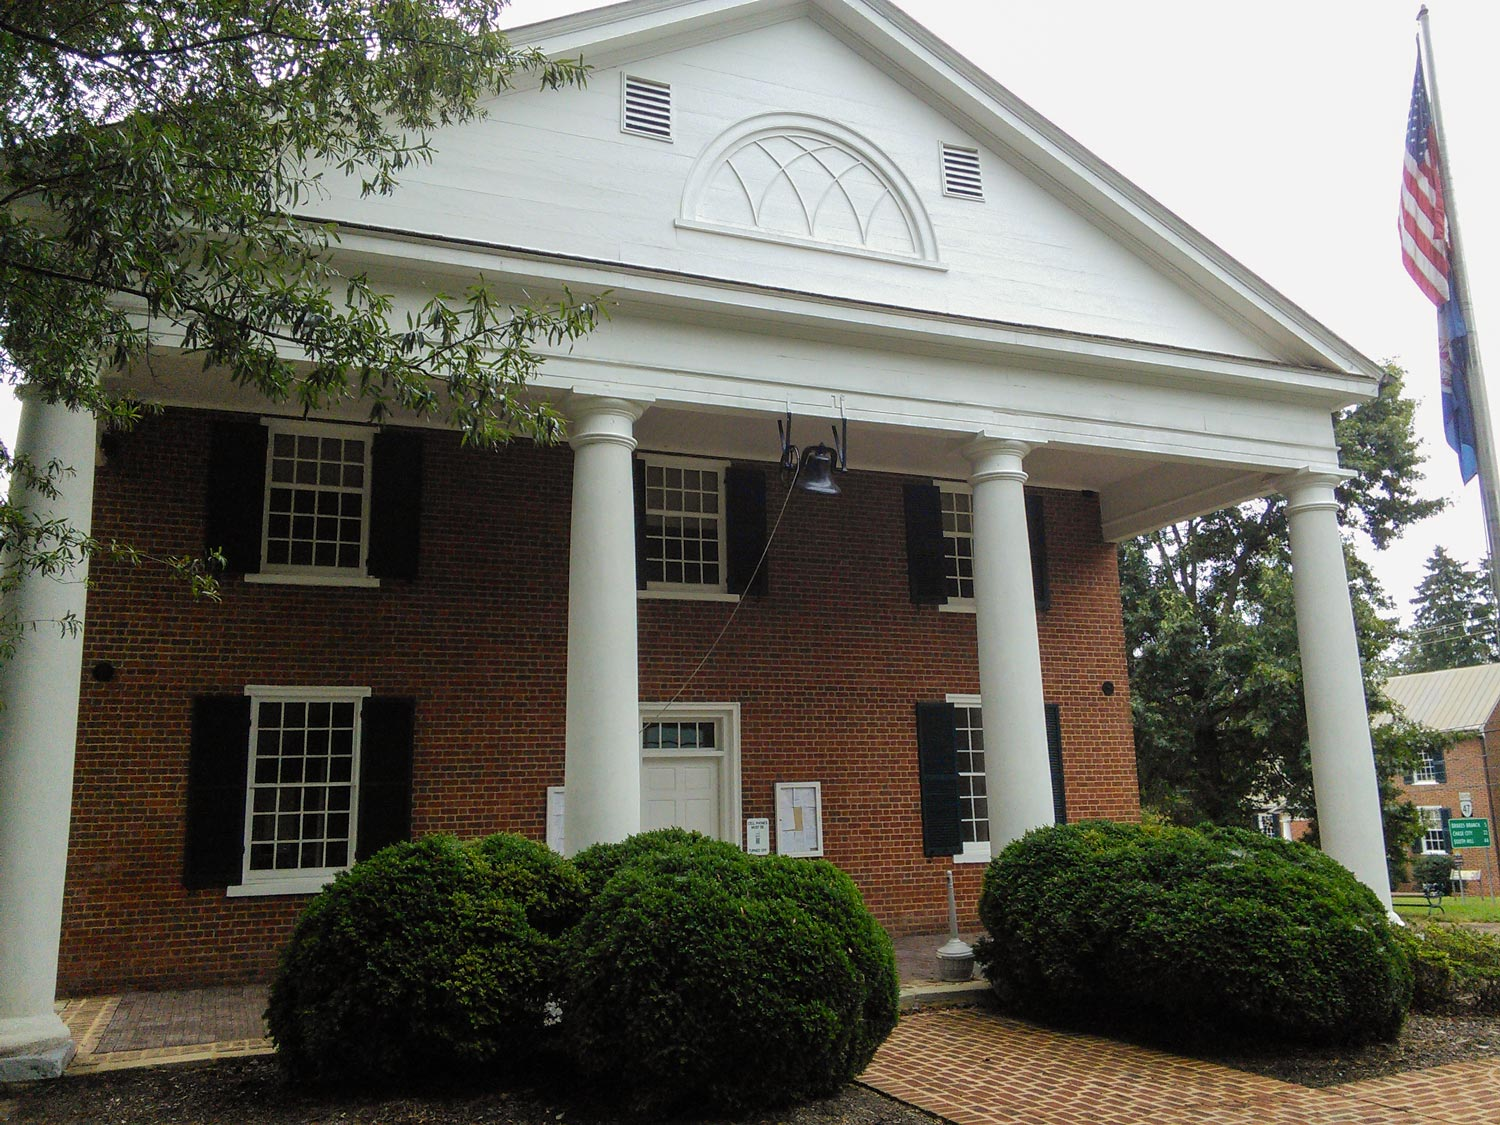 The Charlotte County courthouse is one of three courthouses Jefferson designed in Virginia.